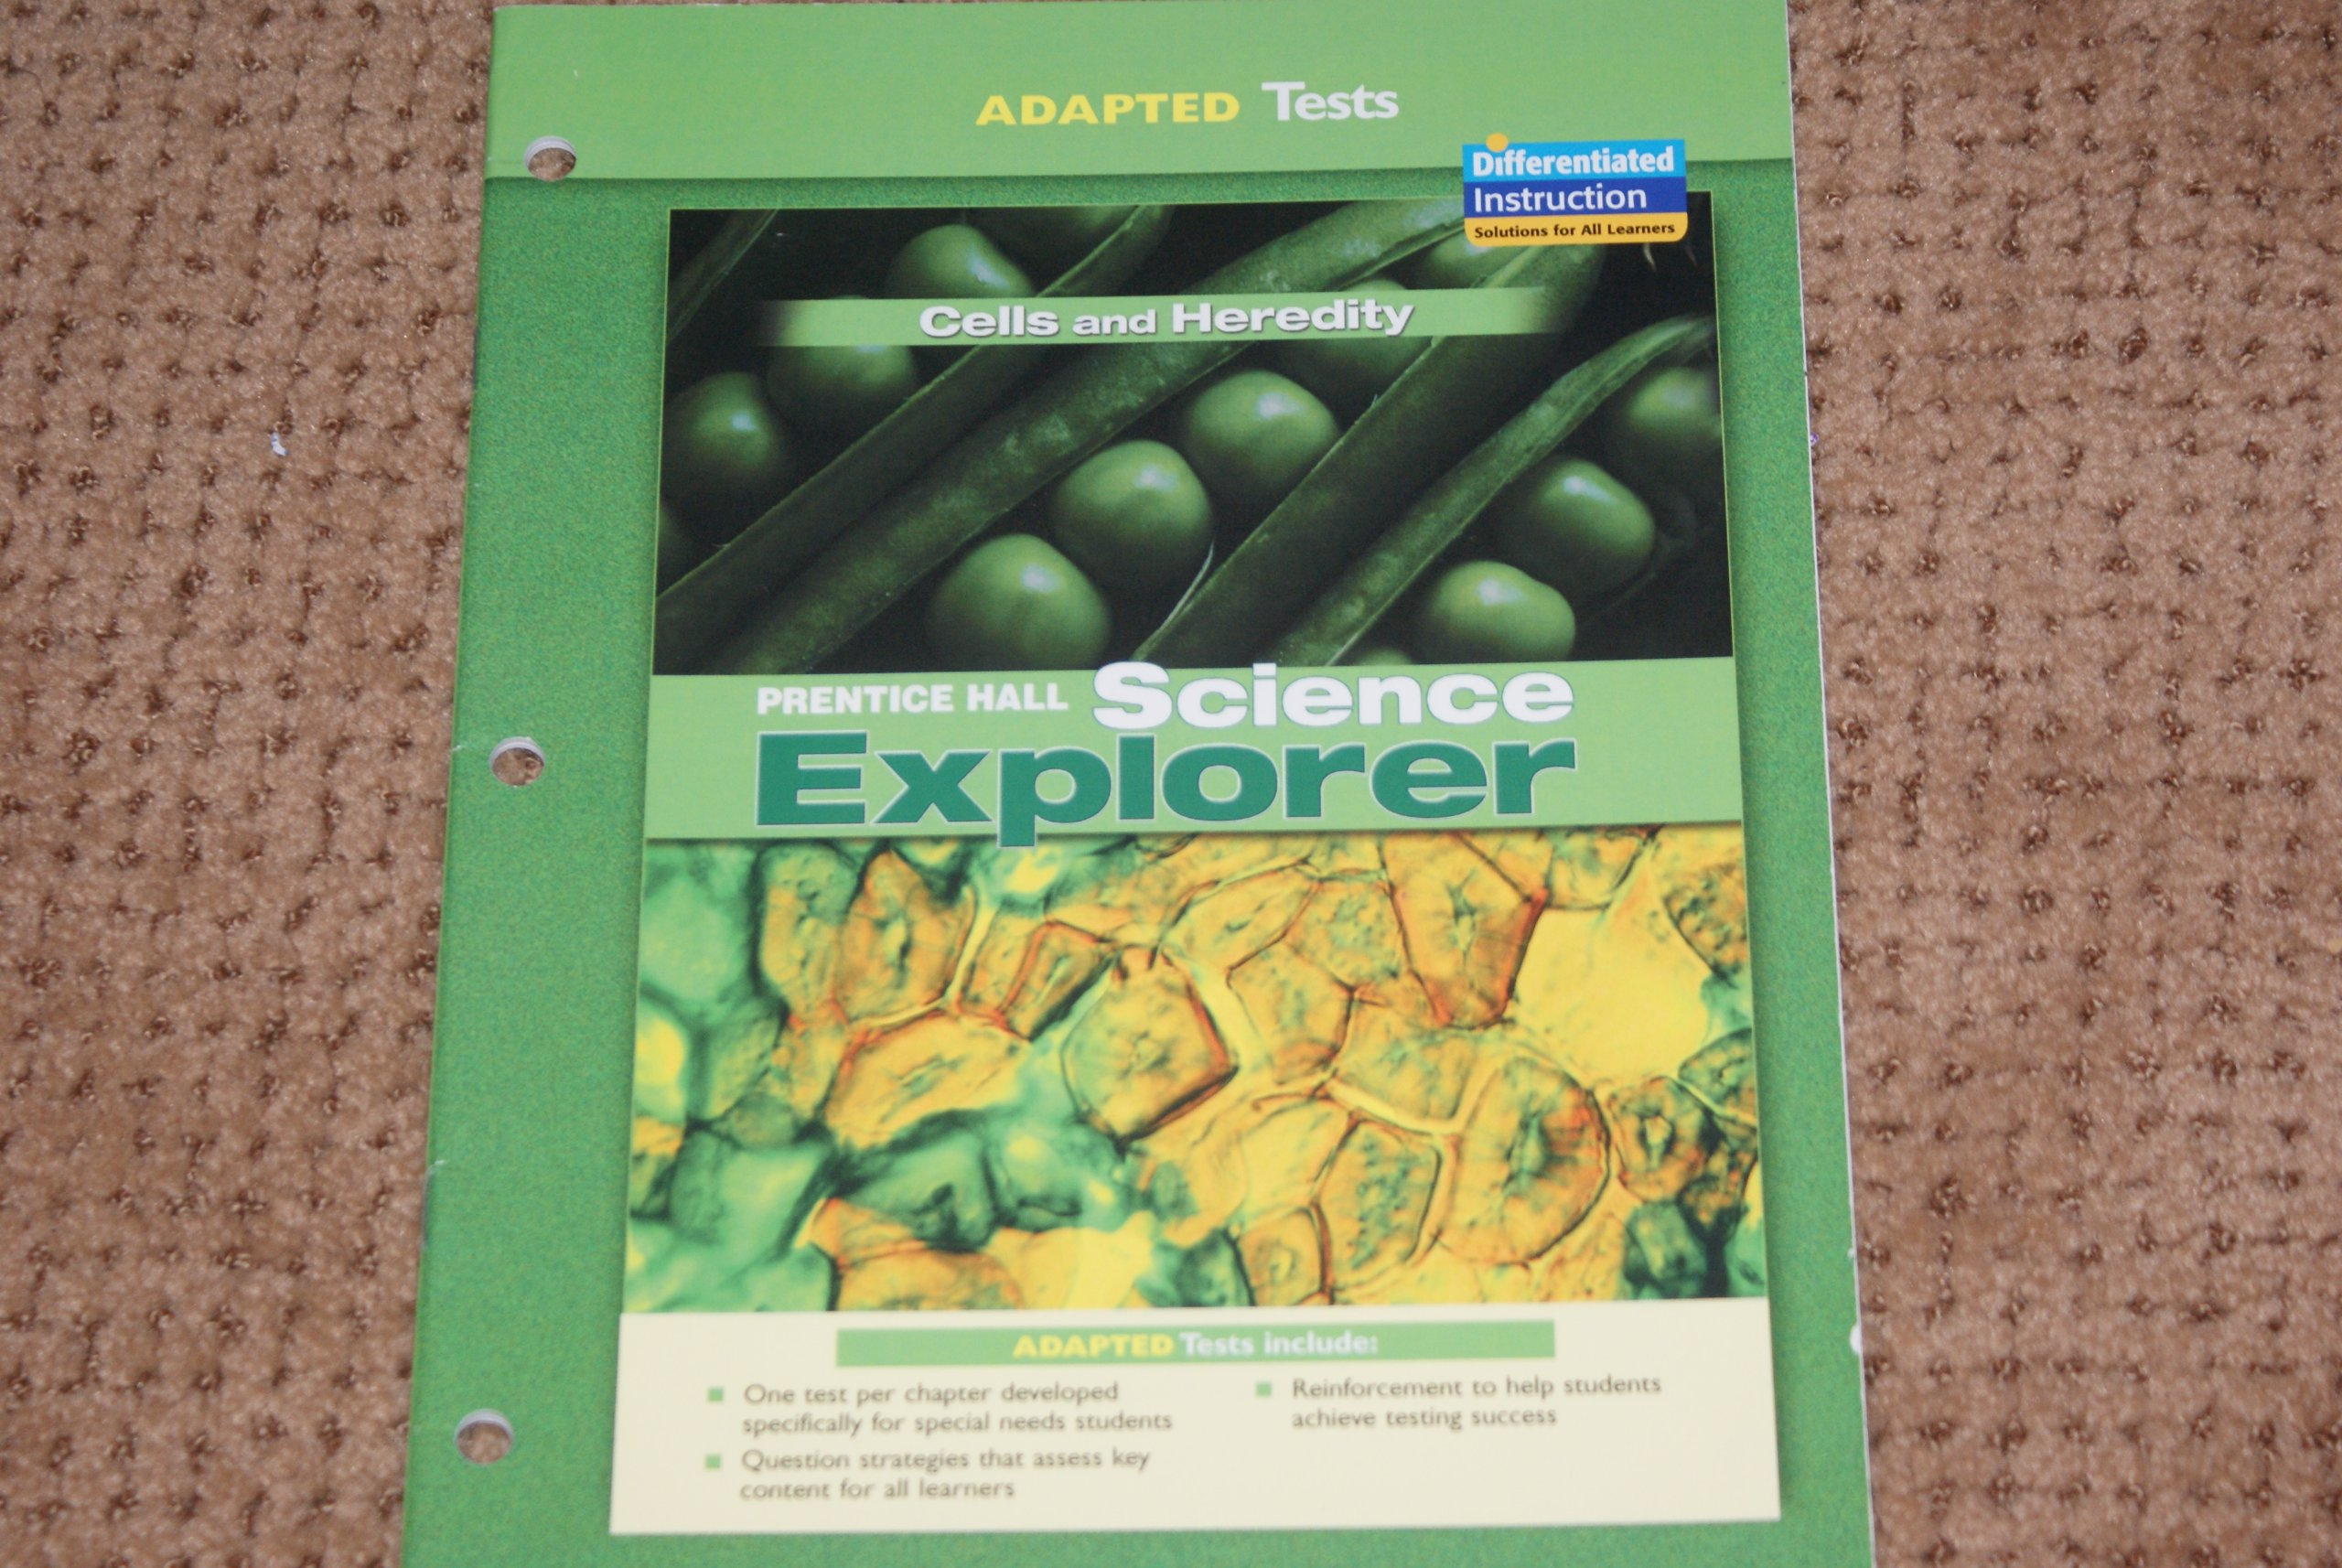 Prentice Hall Science Explorer Adapted Tests Cells and Heredity ebook